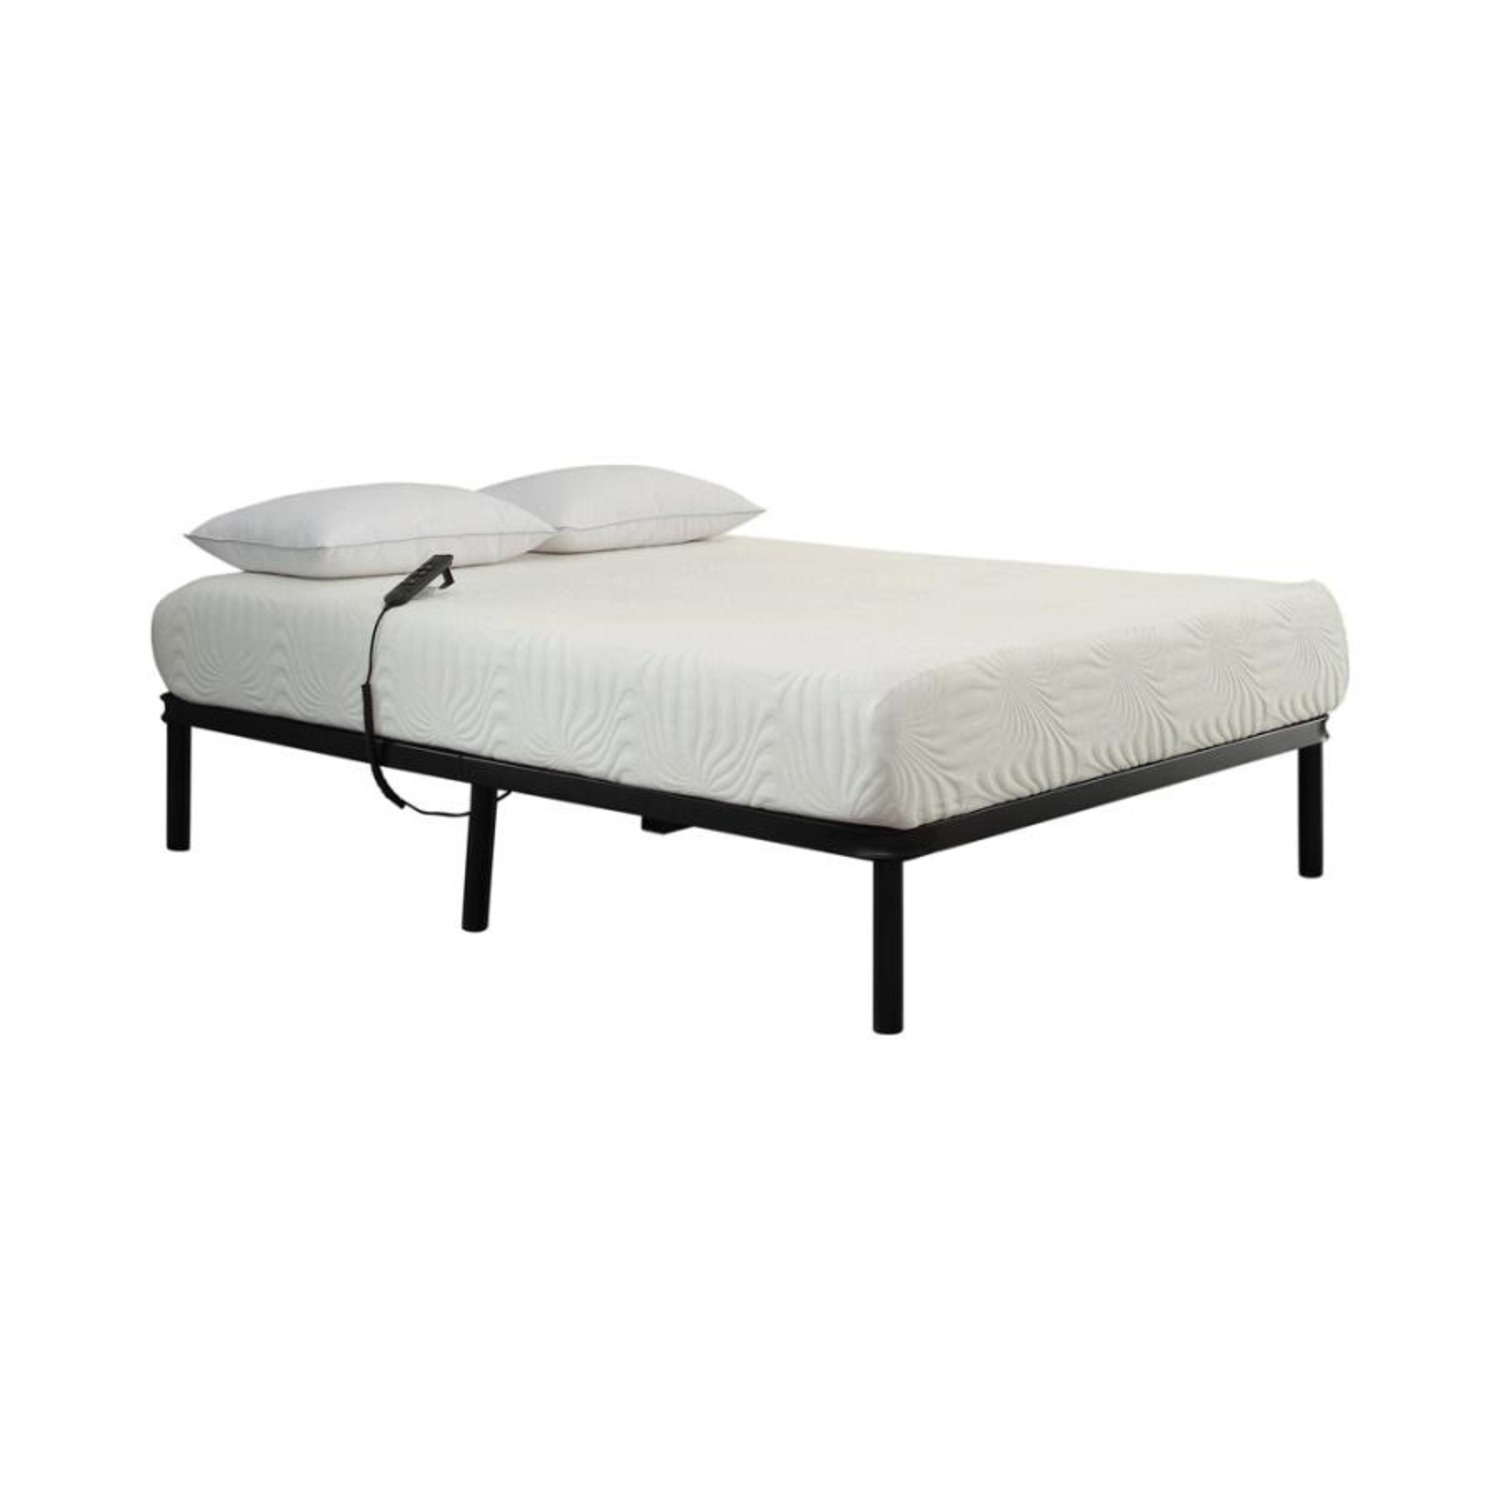 Adjustable Twin XL Bed Base In Black Finish - image-0